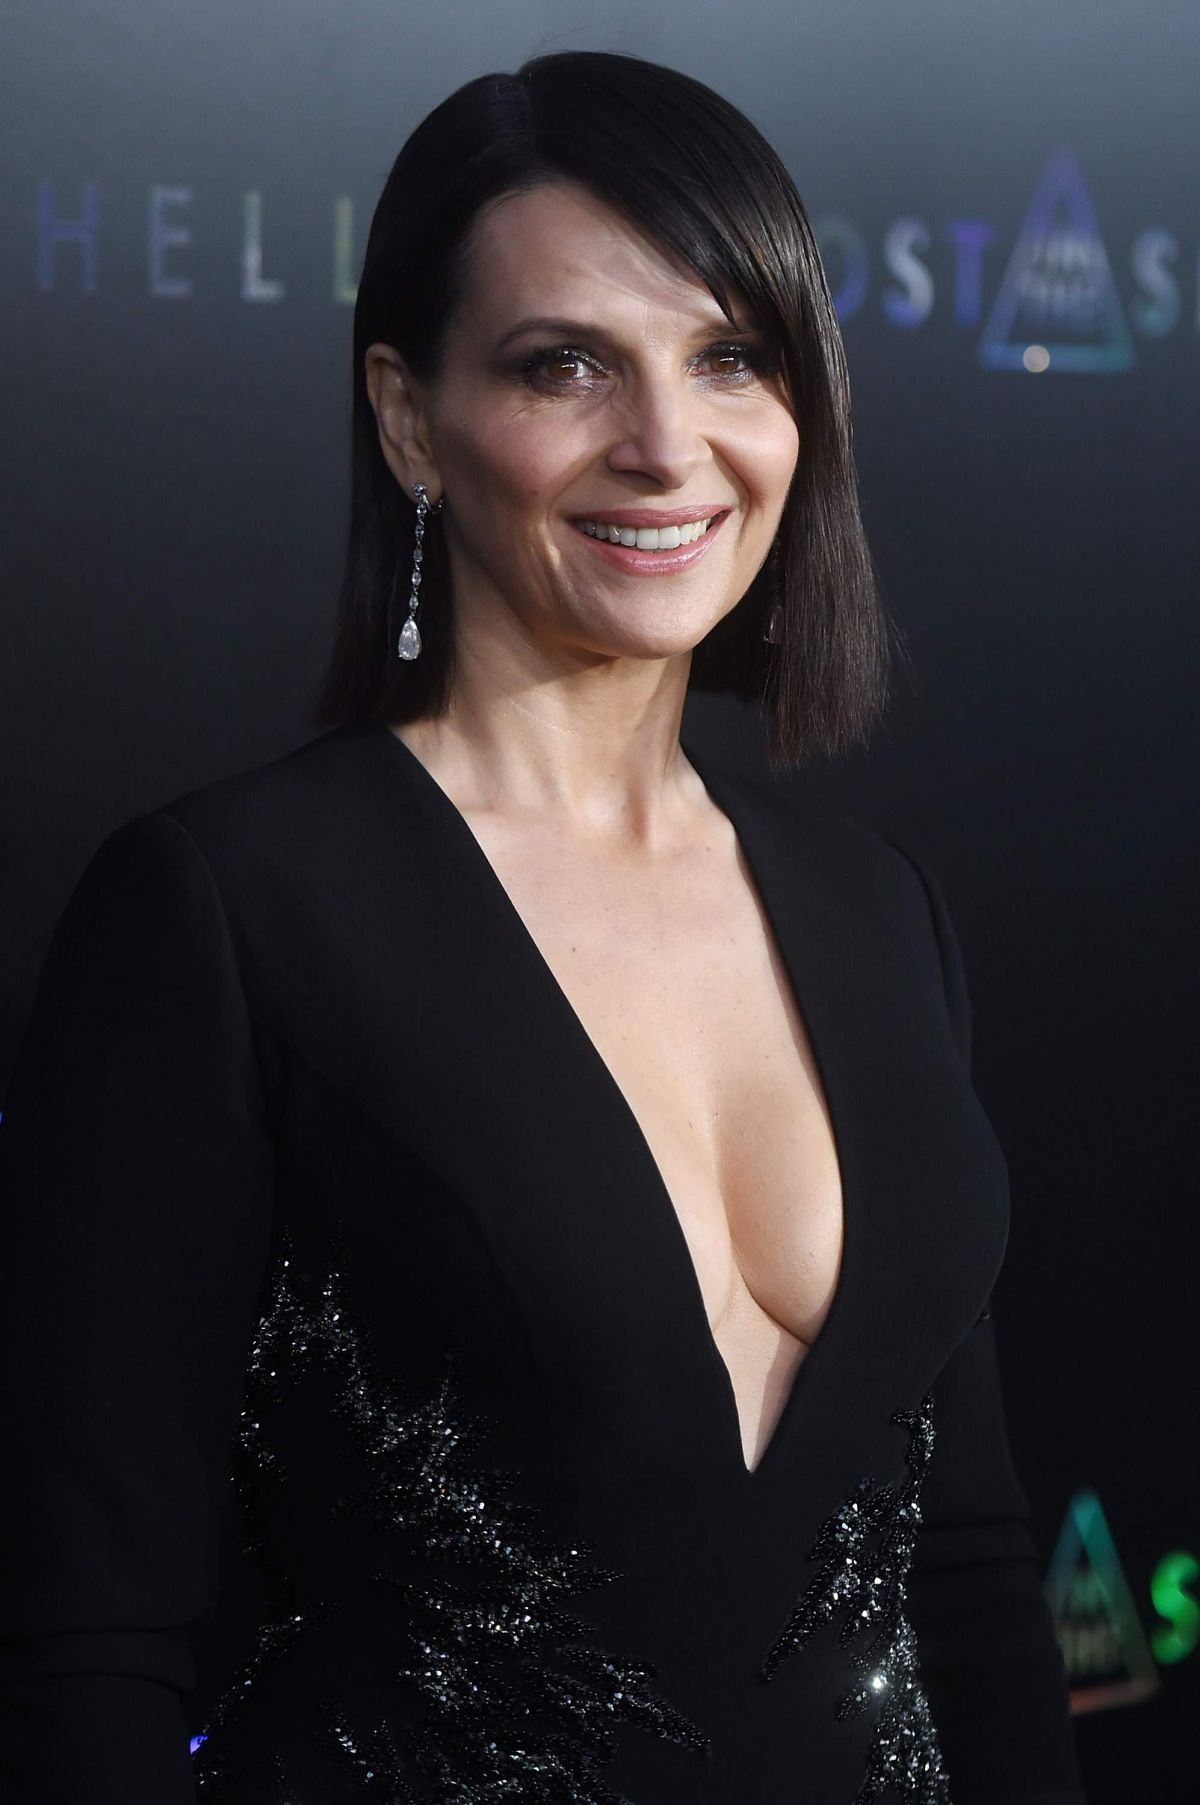 Pictures Juliette Binoche nude (31 foto and video), Pussy, Hot, Feet, cleavage 2006